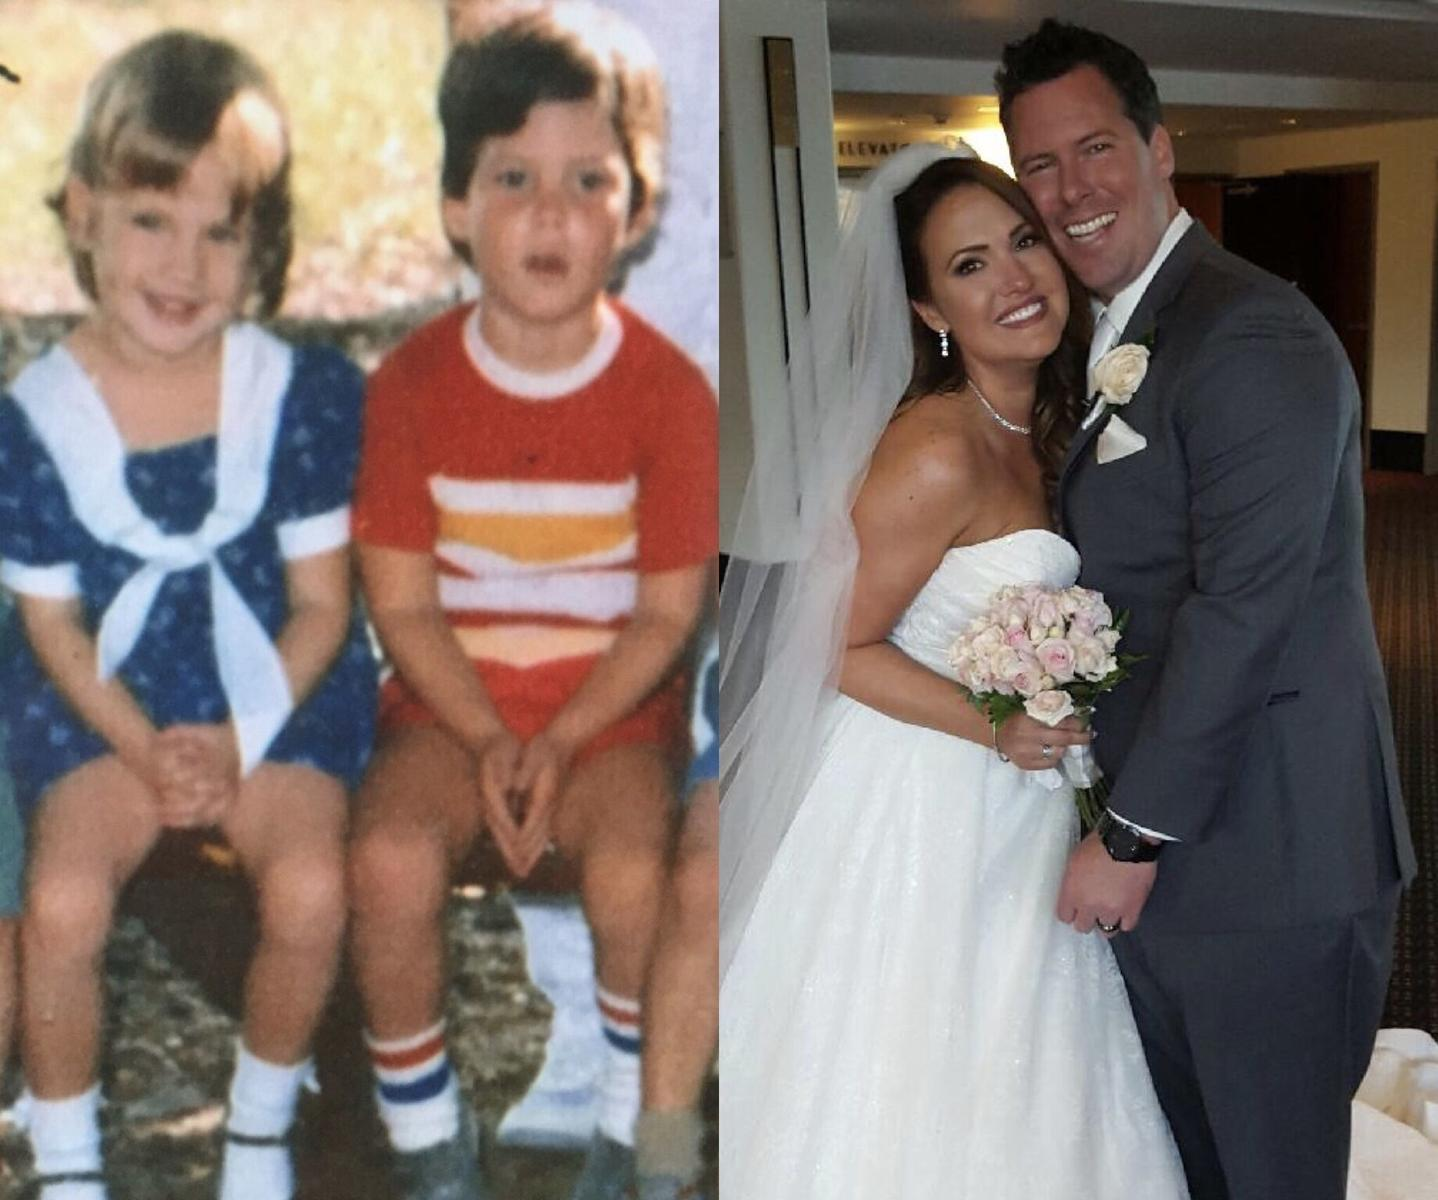 Preschool Sweethearts Who Reconnected After 30 Years Welcome Rainbow Baby